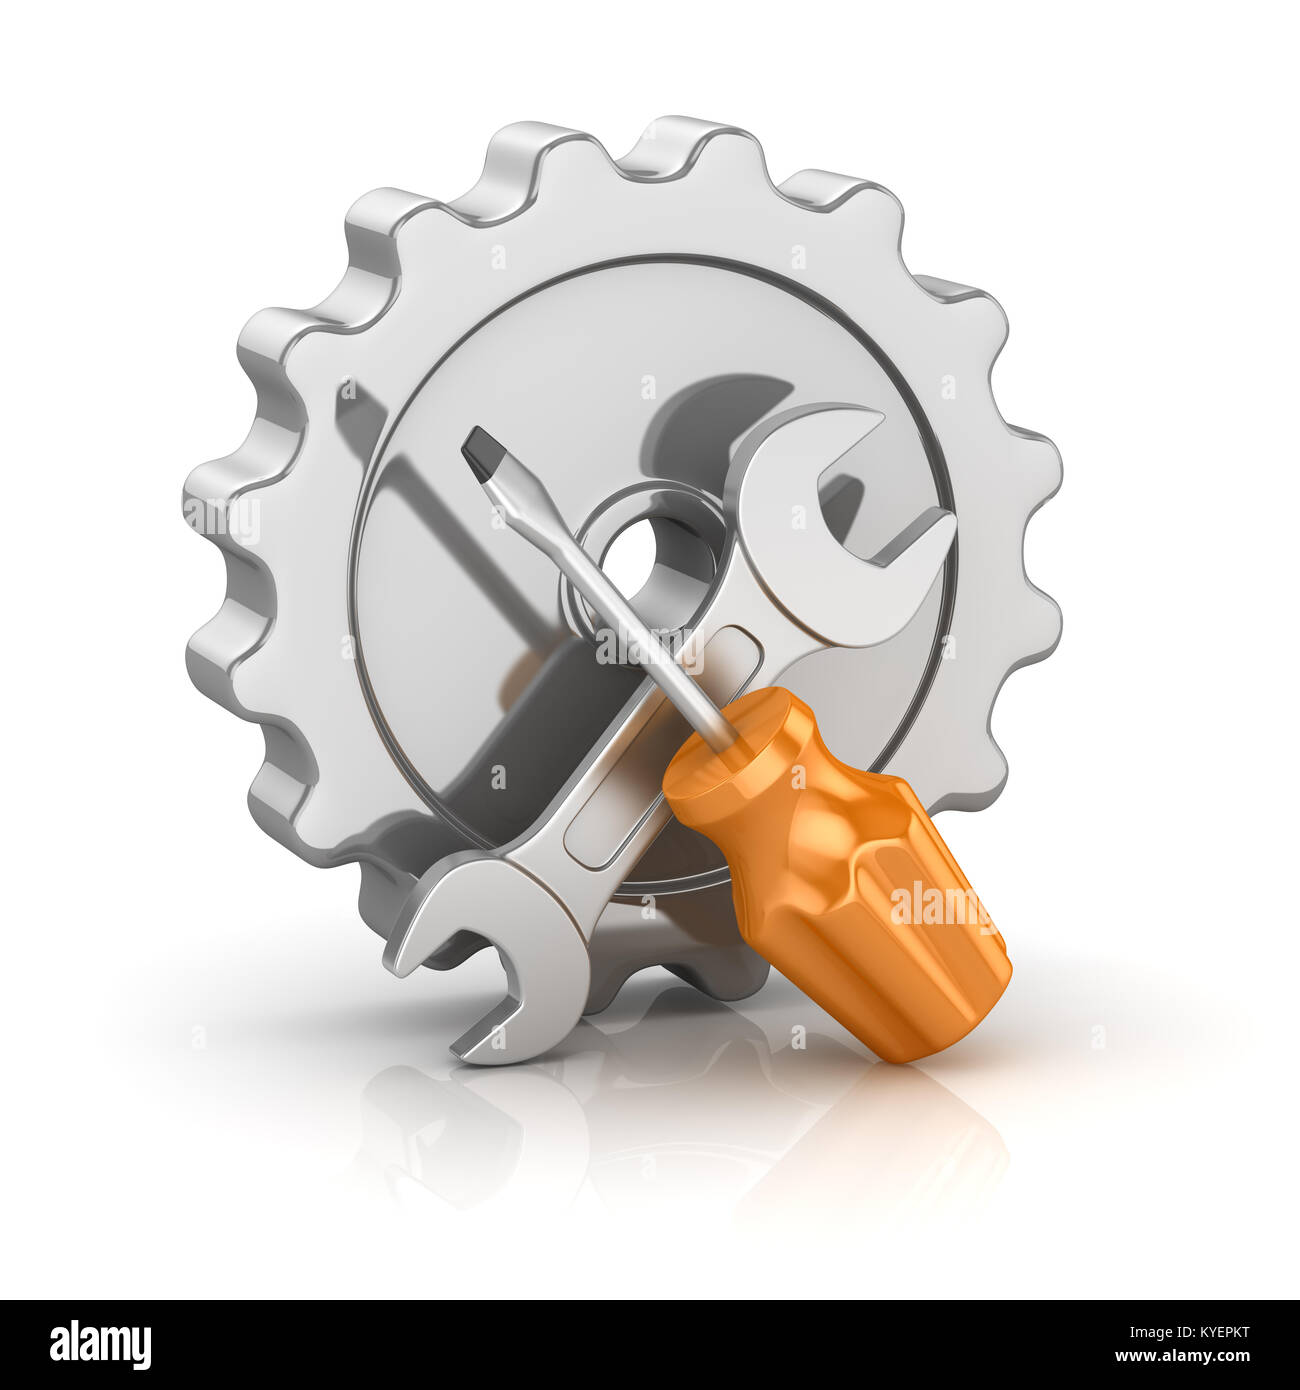 Wrench icon 3d stock photos wrench icon 3d stock images alamy screw driver and wrench with gear this is a 3d rendered computer generated image buycottarizona